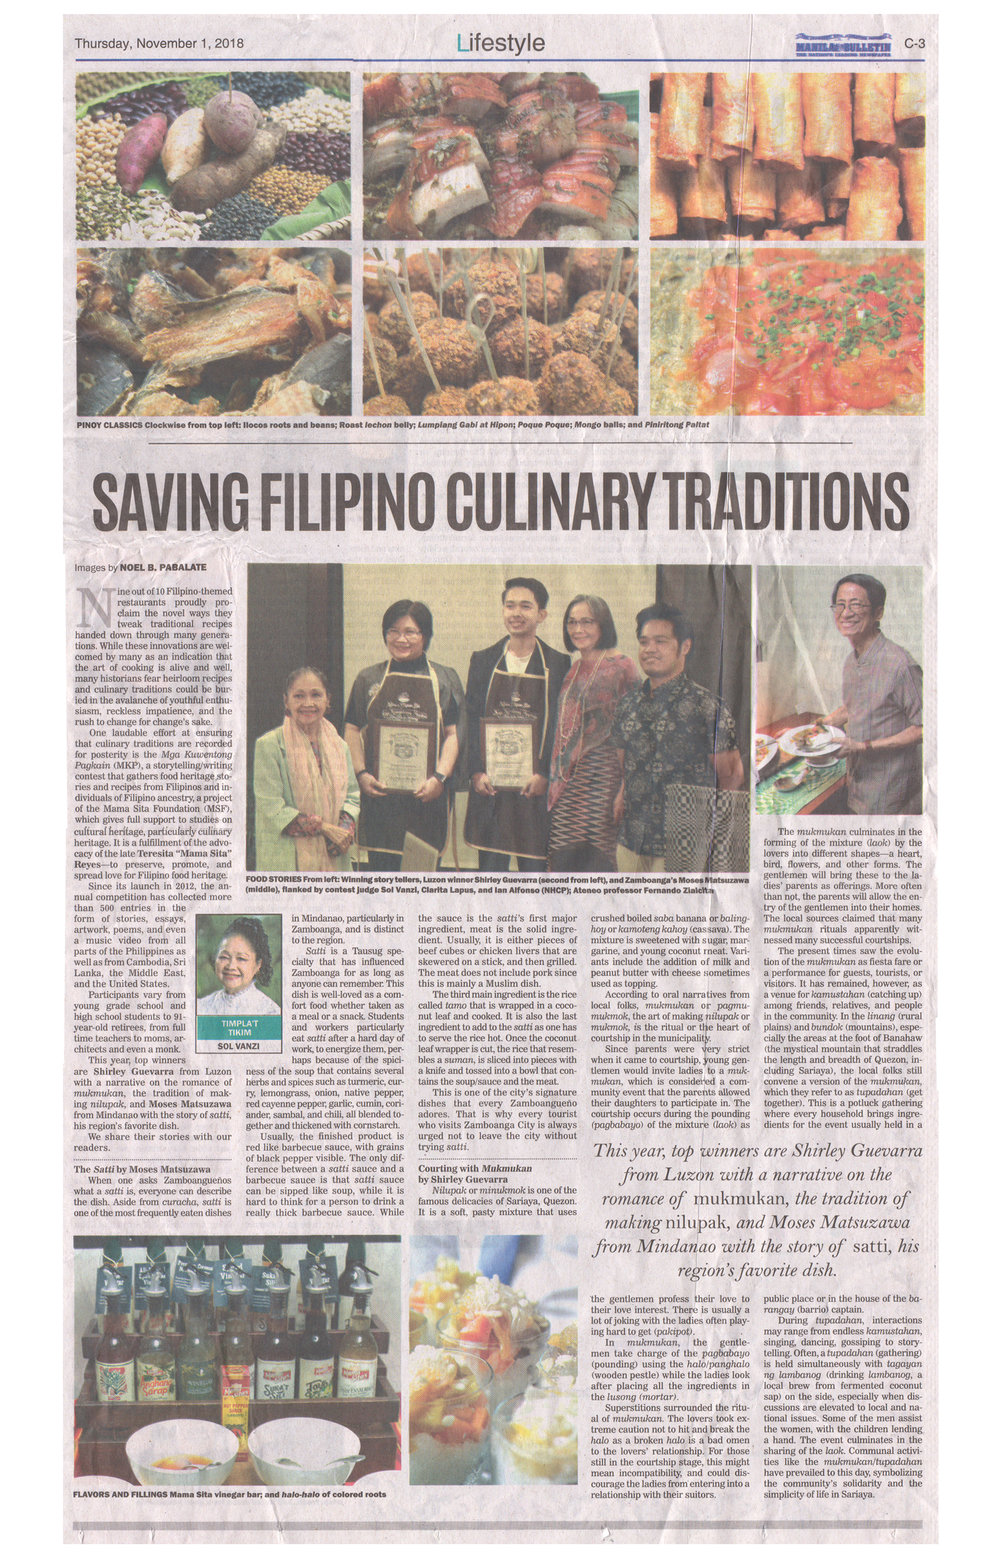 2018-11-01 - Manila Bulletin - Saving Filipino Culinary Traditions.jpg